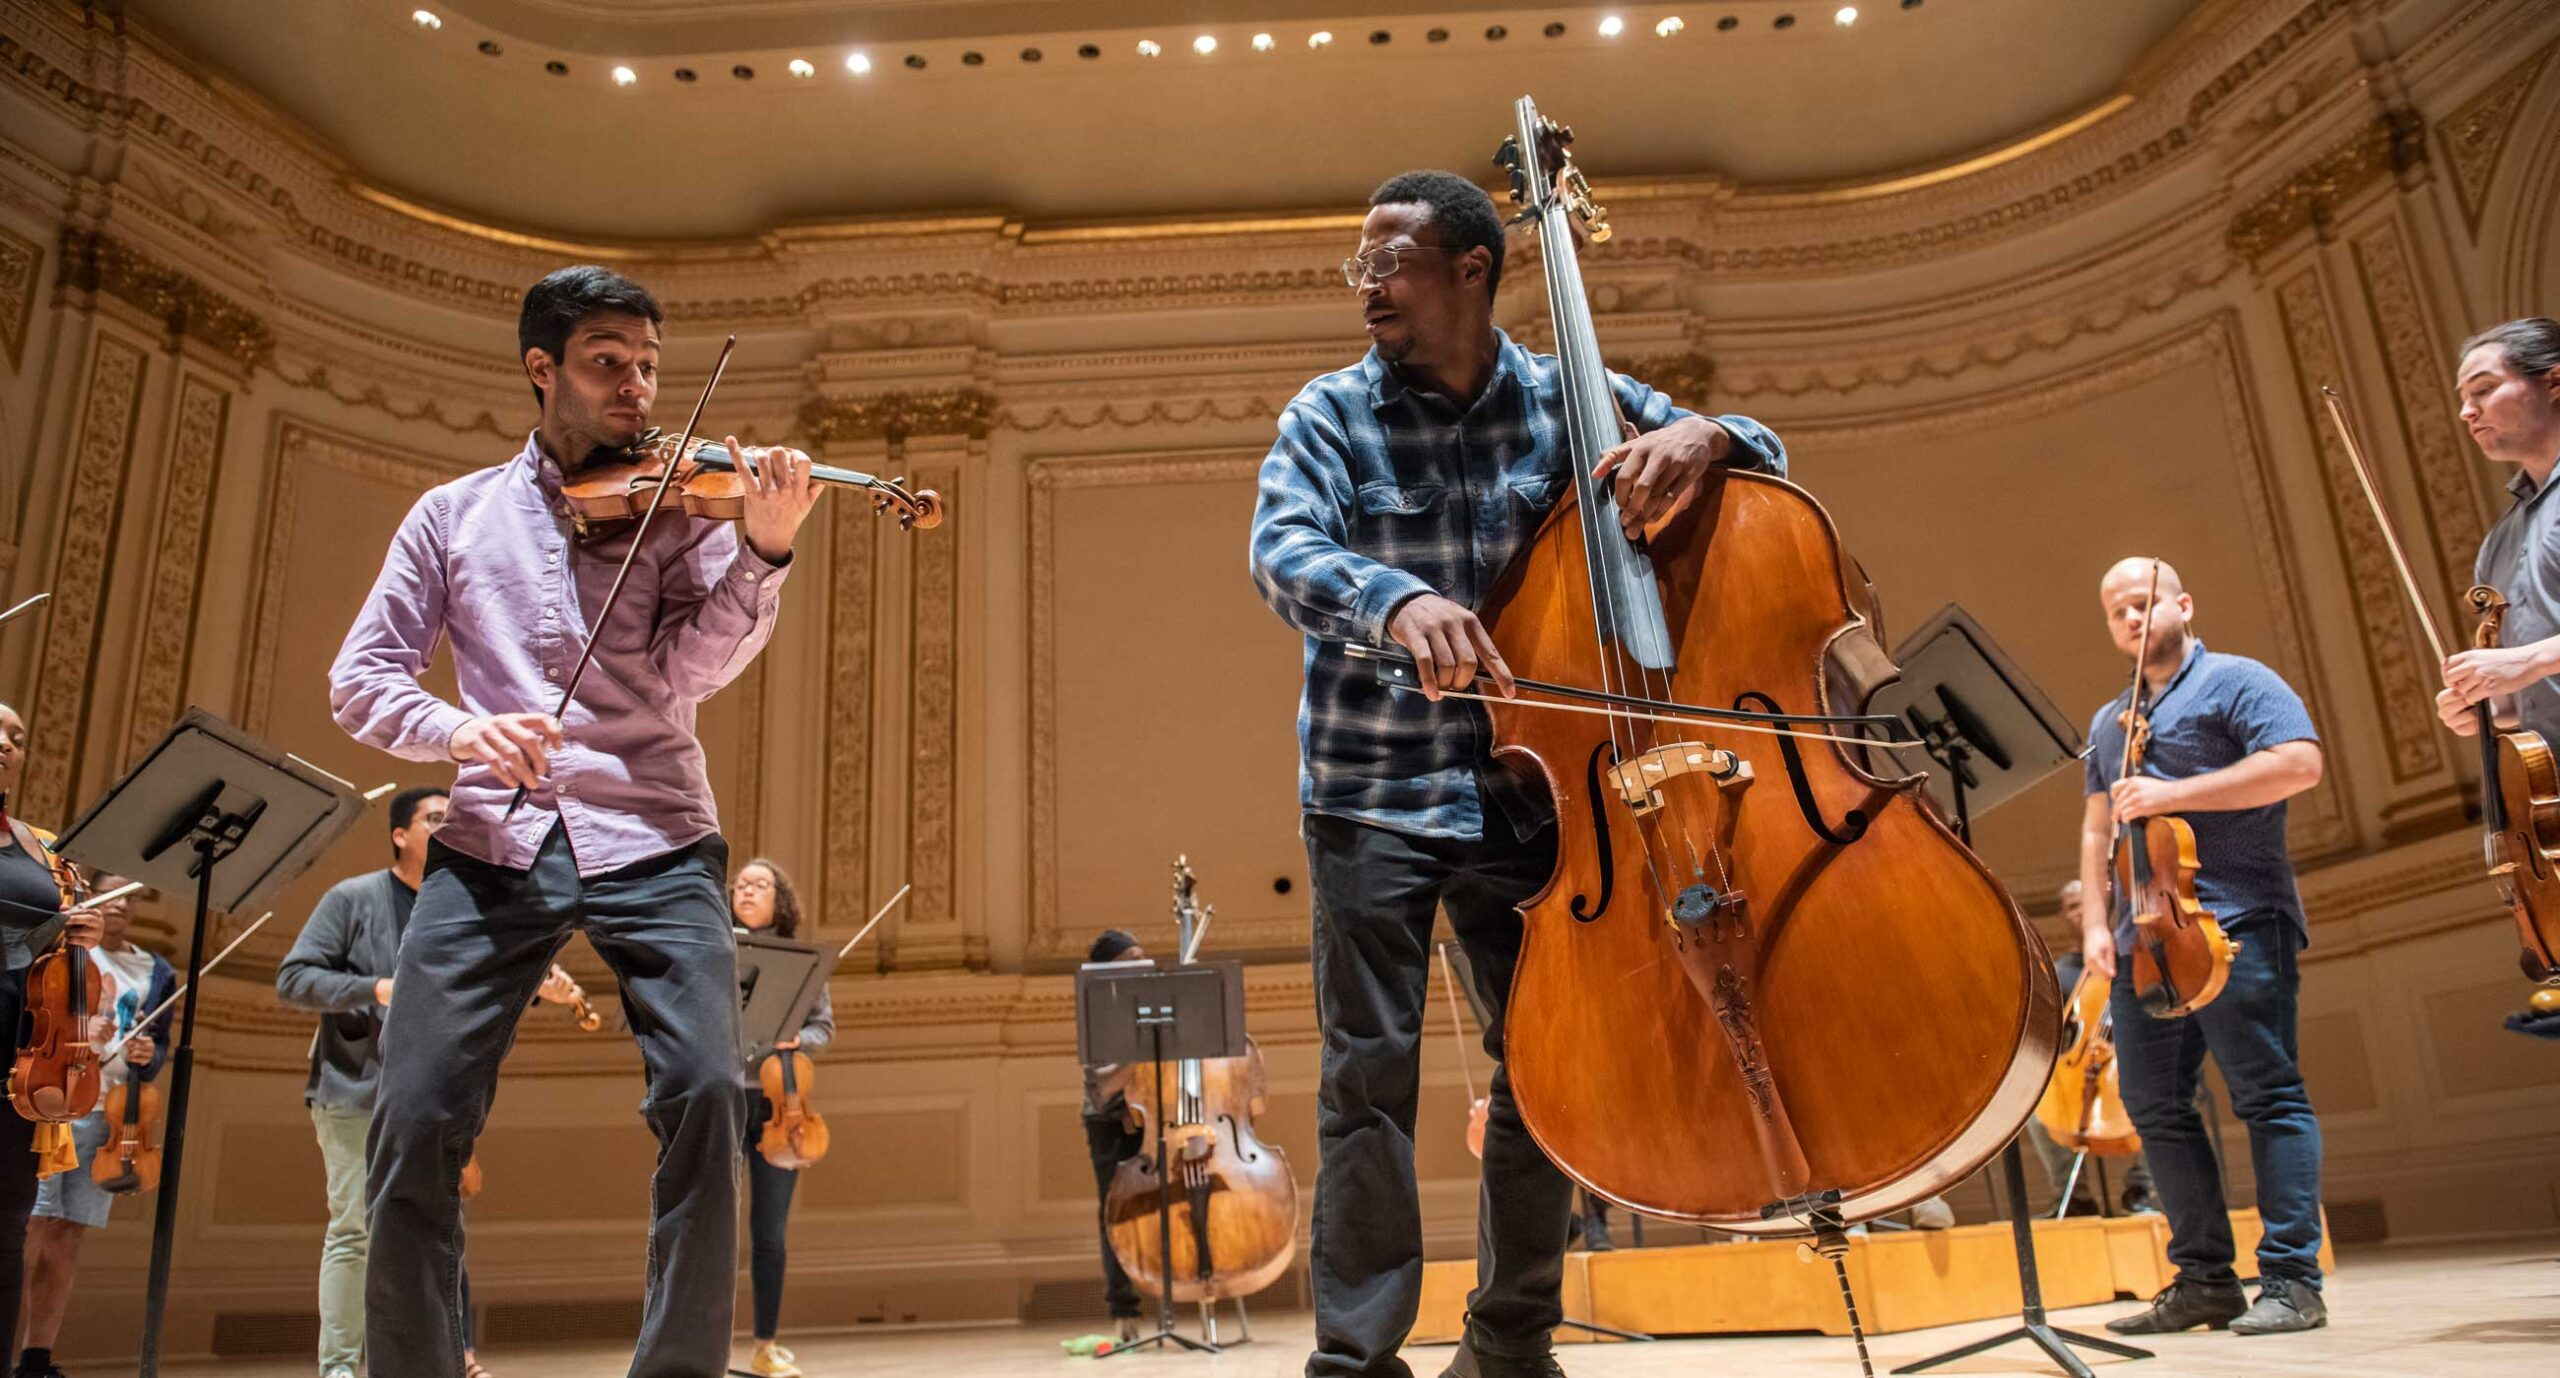 Violinist and cellist playing together on stage